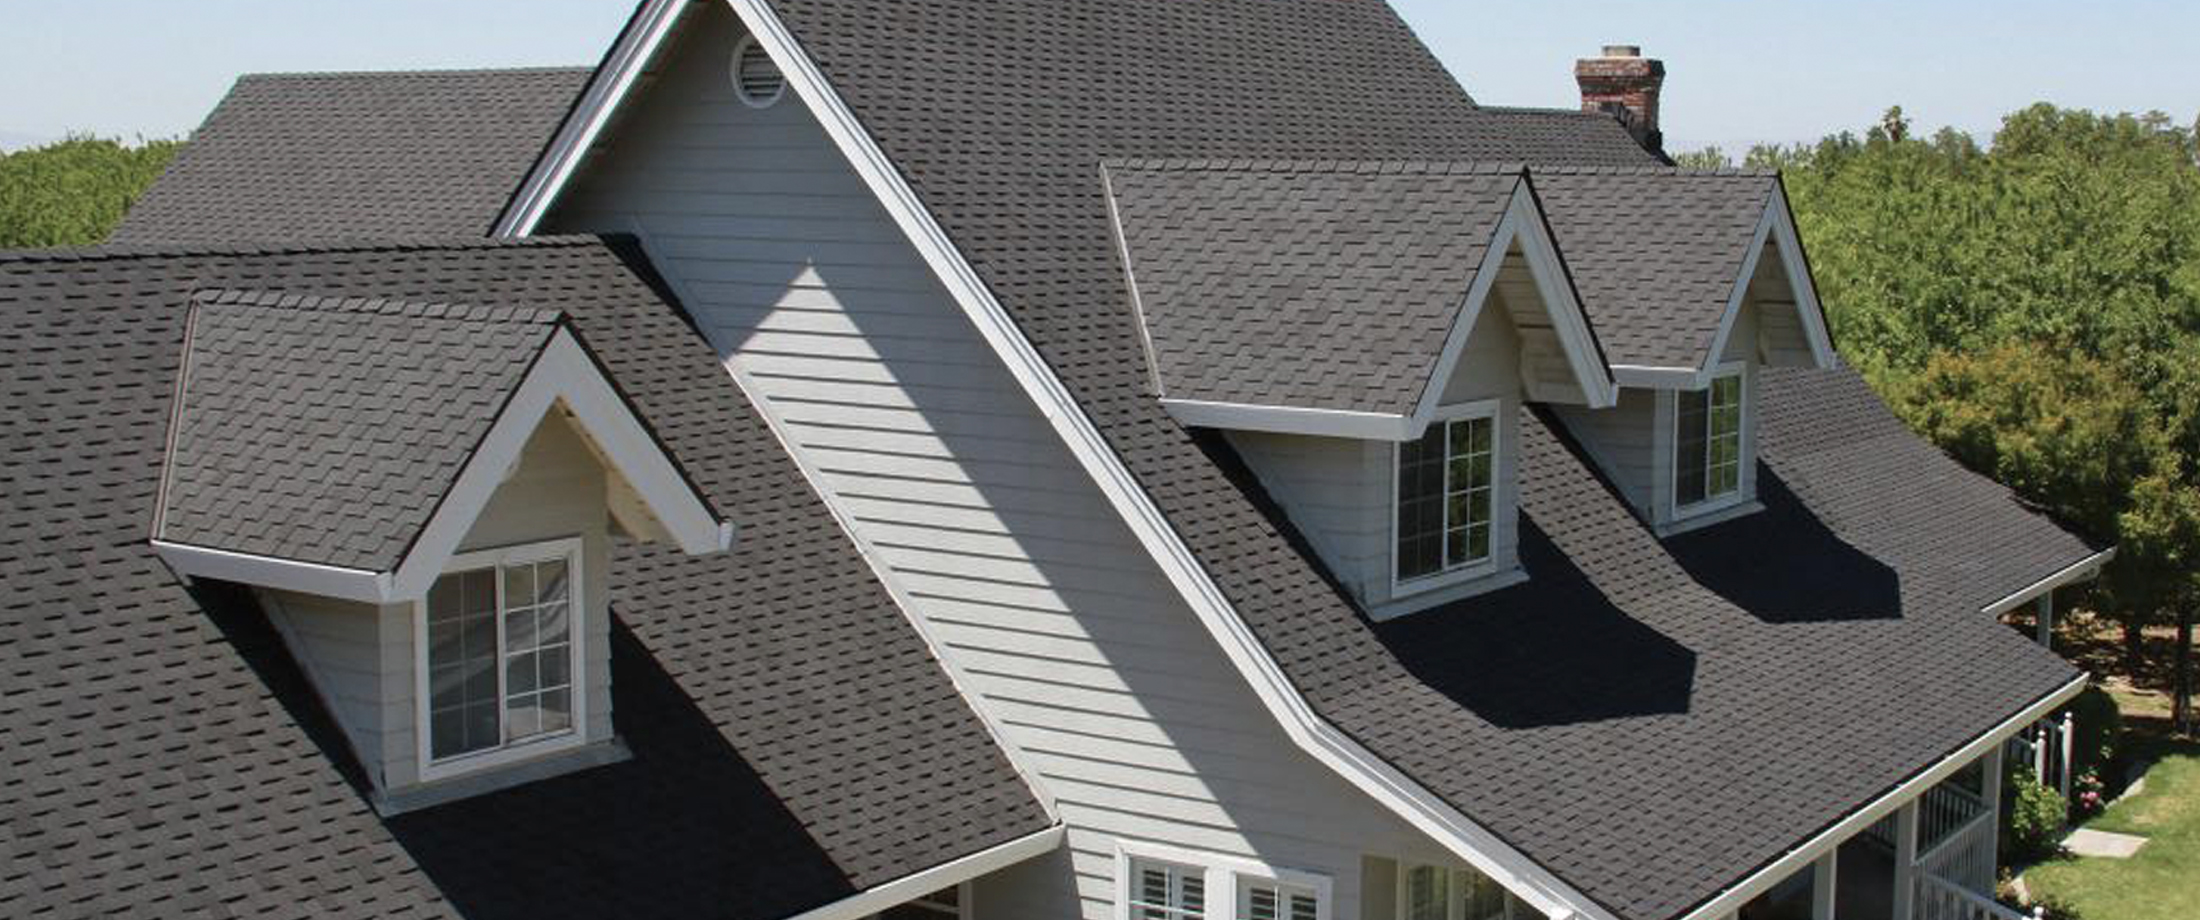 Connect with a Roofing Consultant